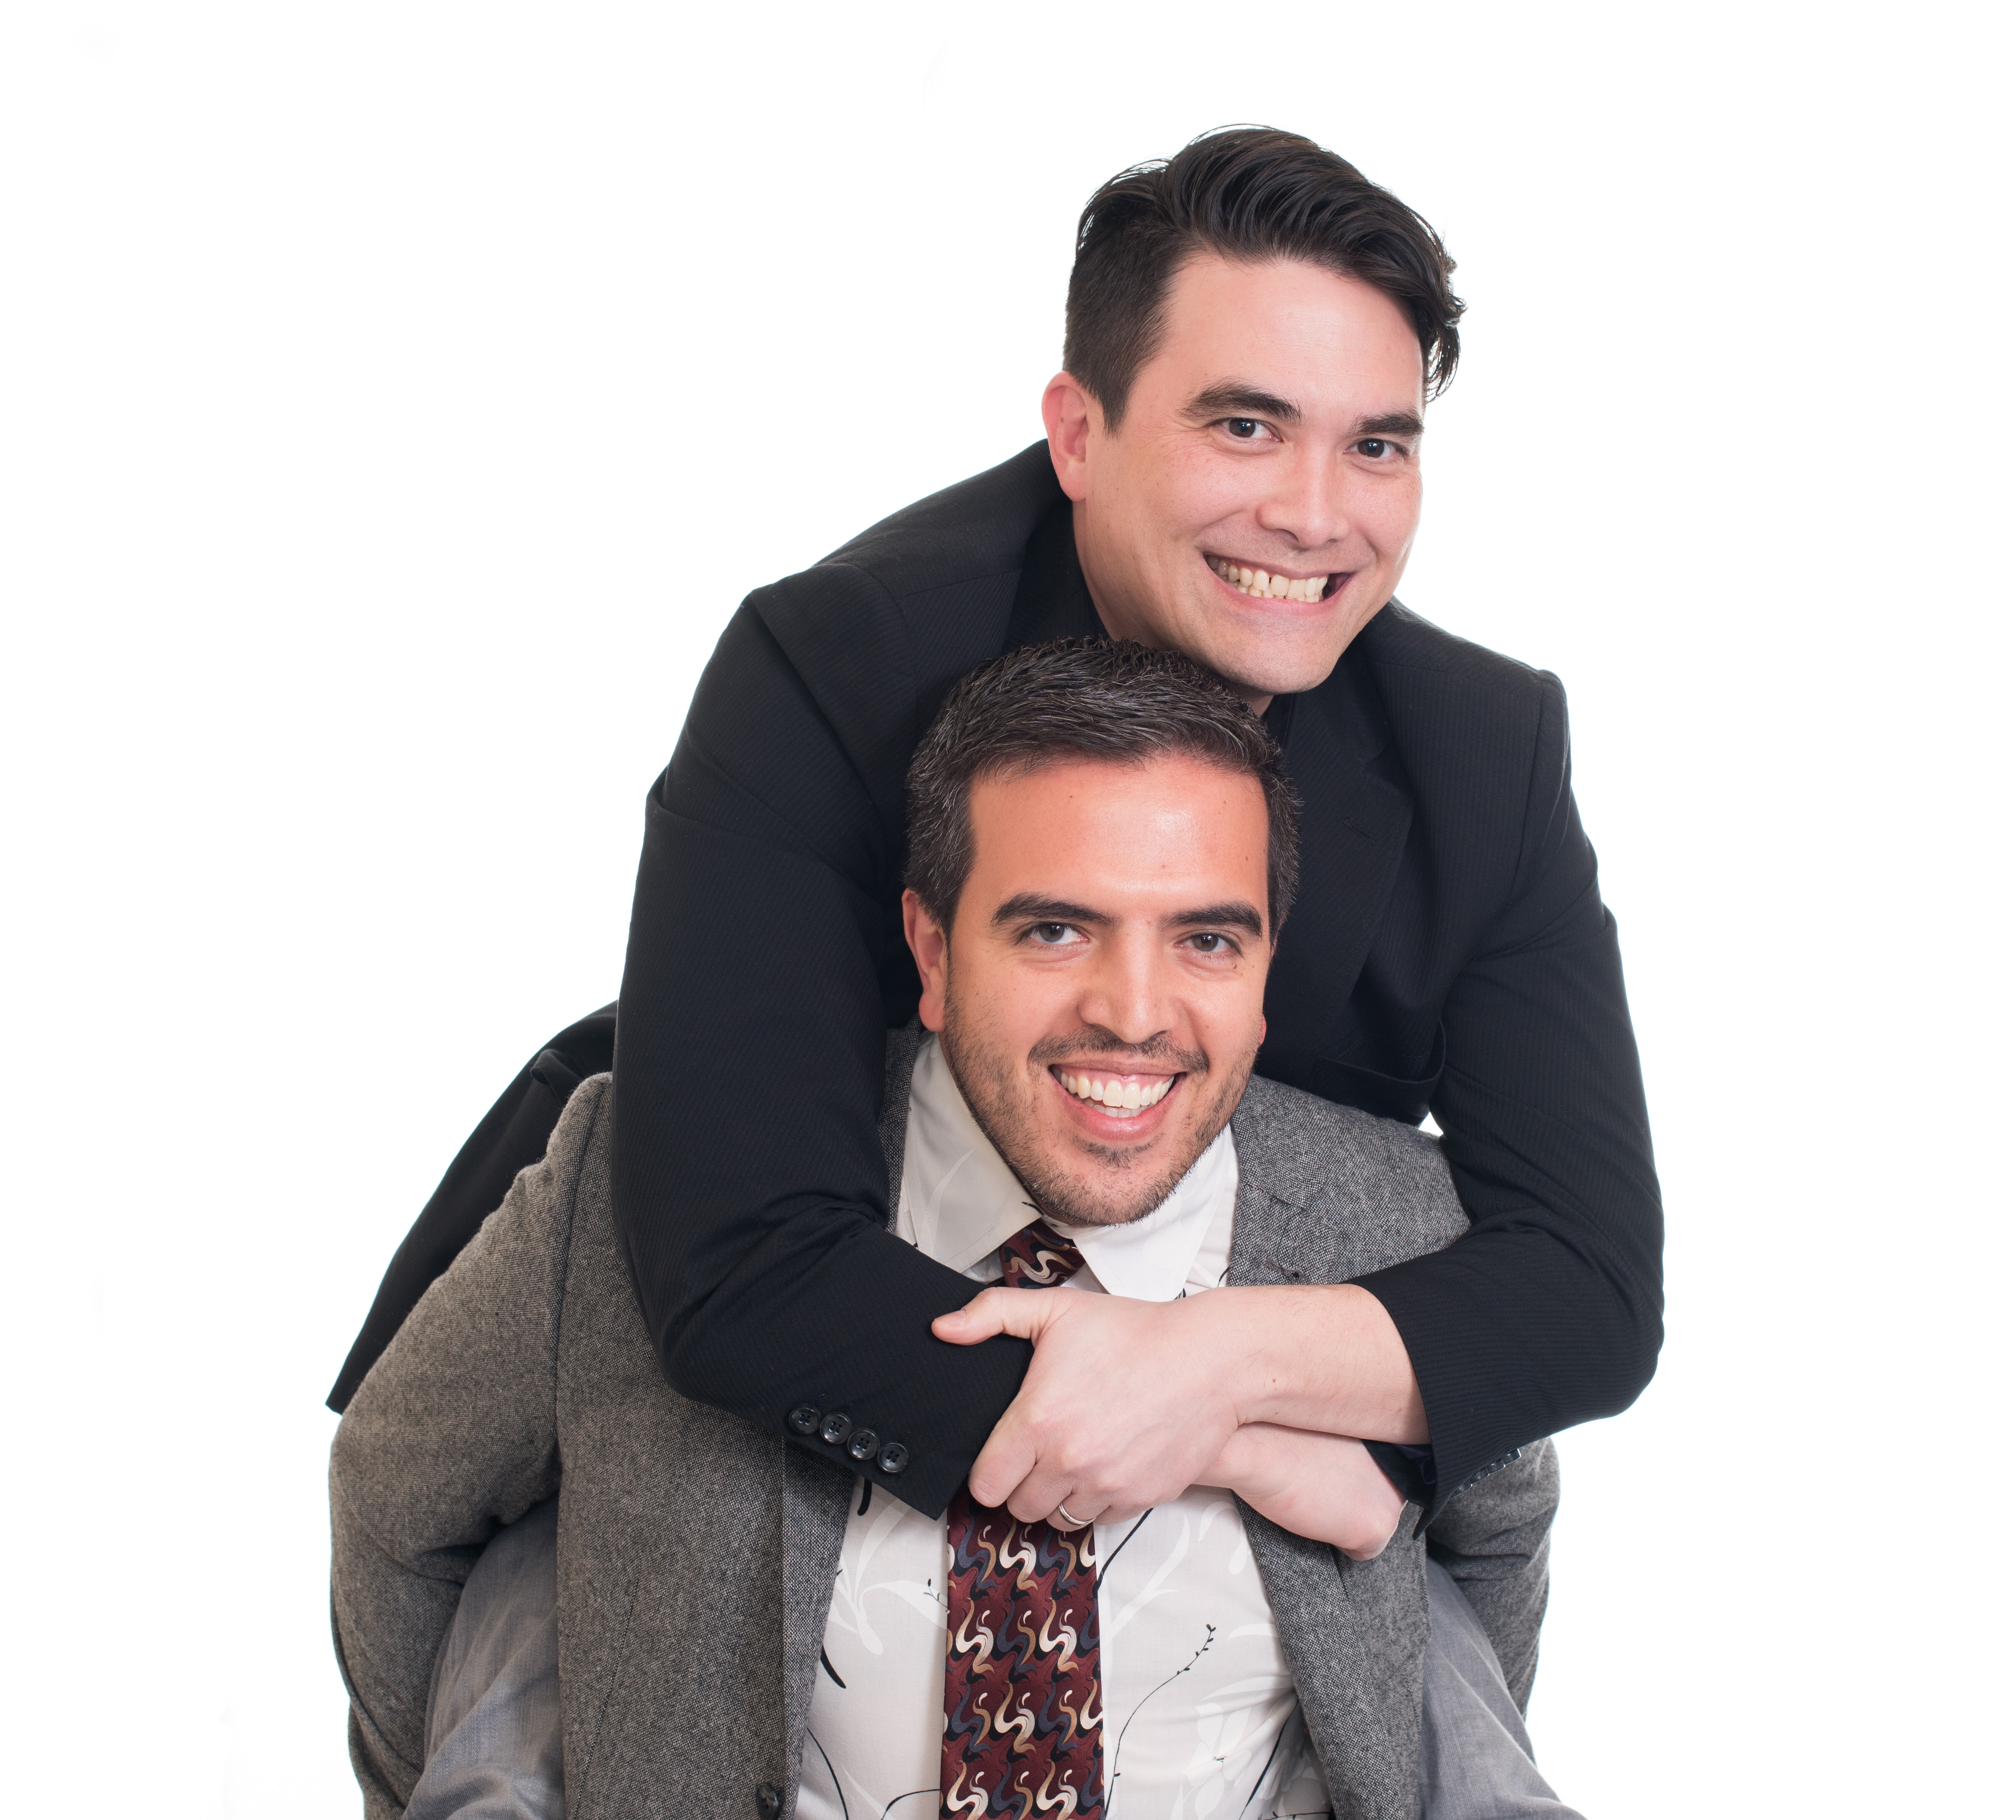 Kirk and Humberto piggybacking photo